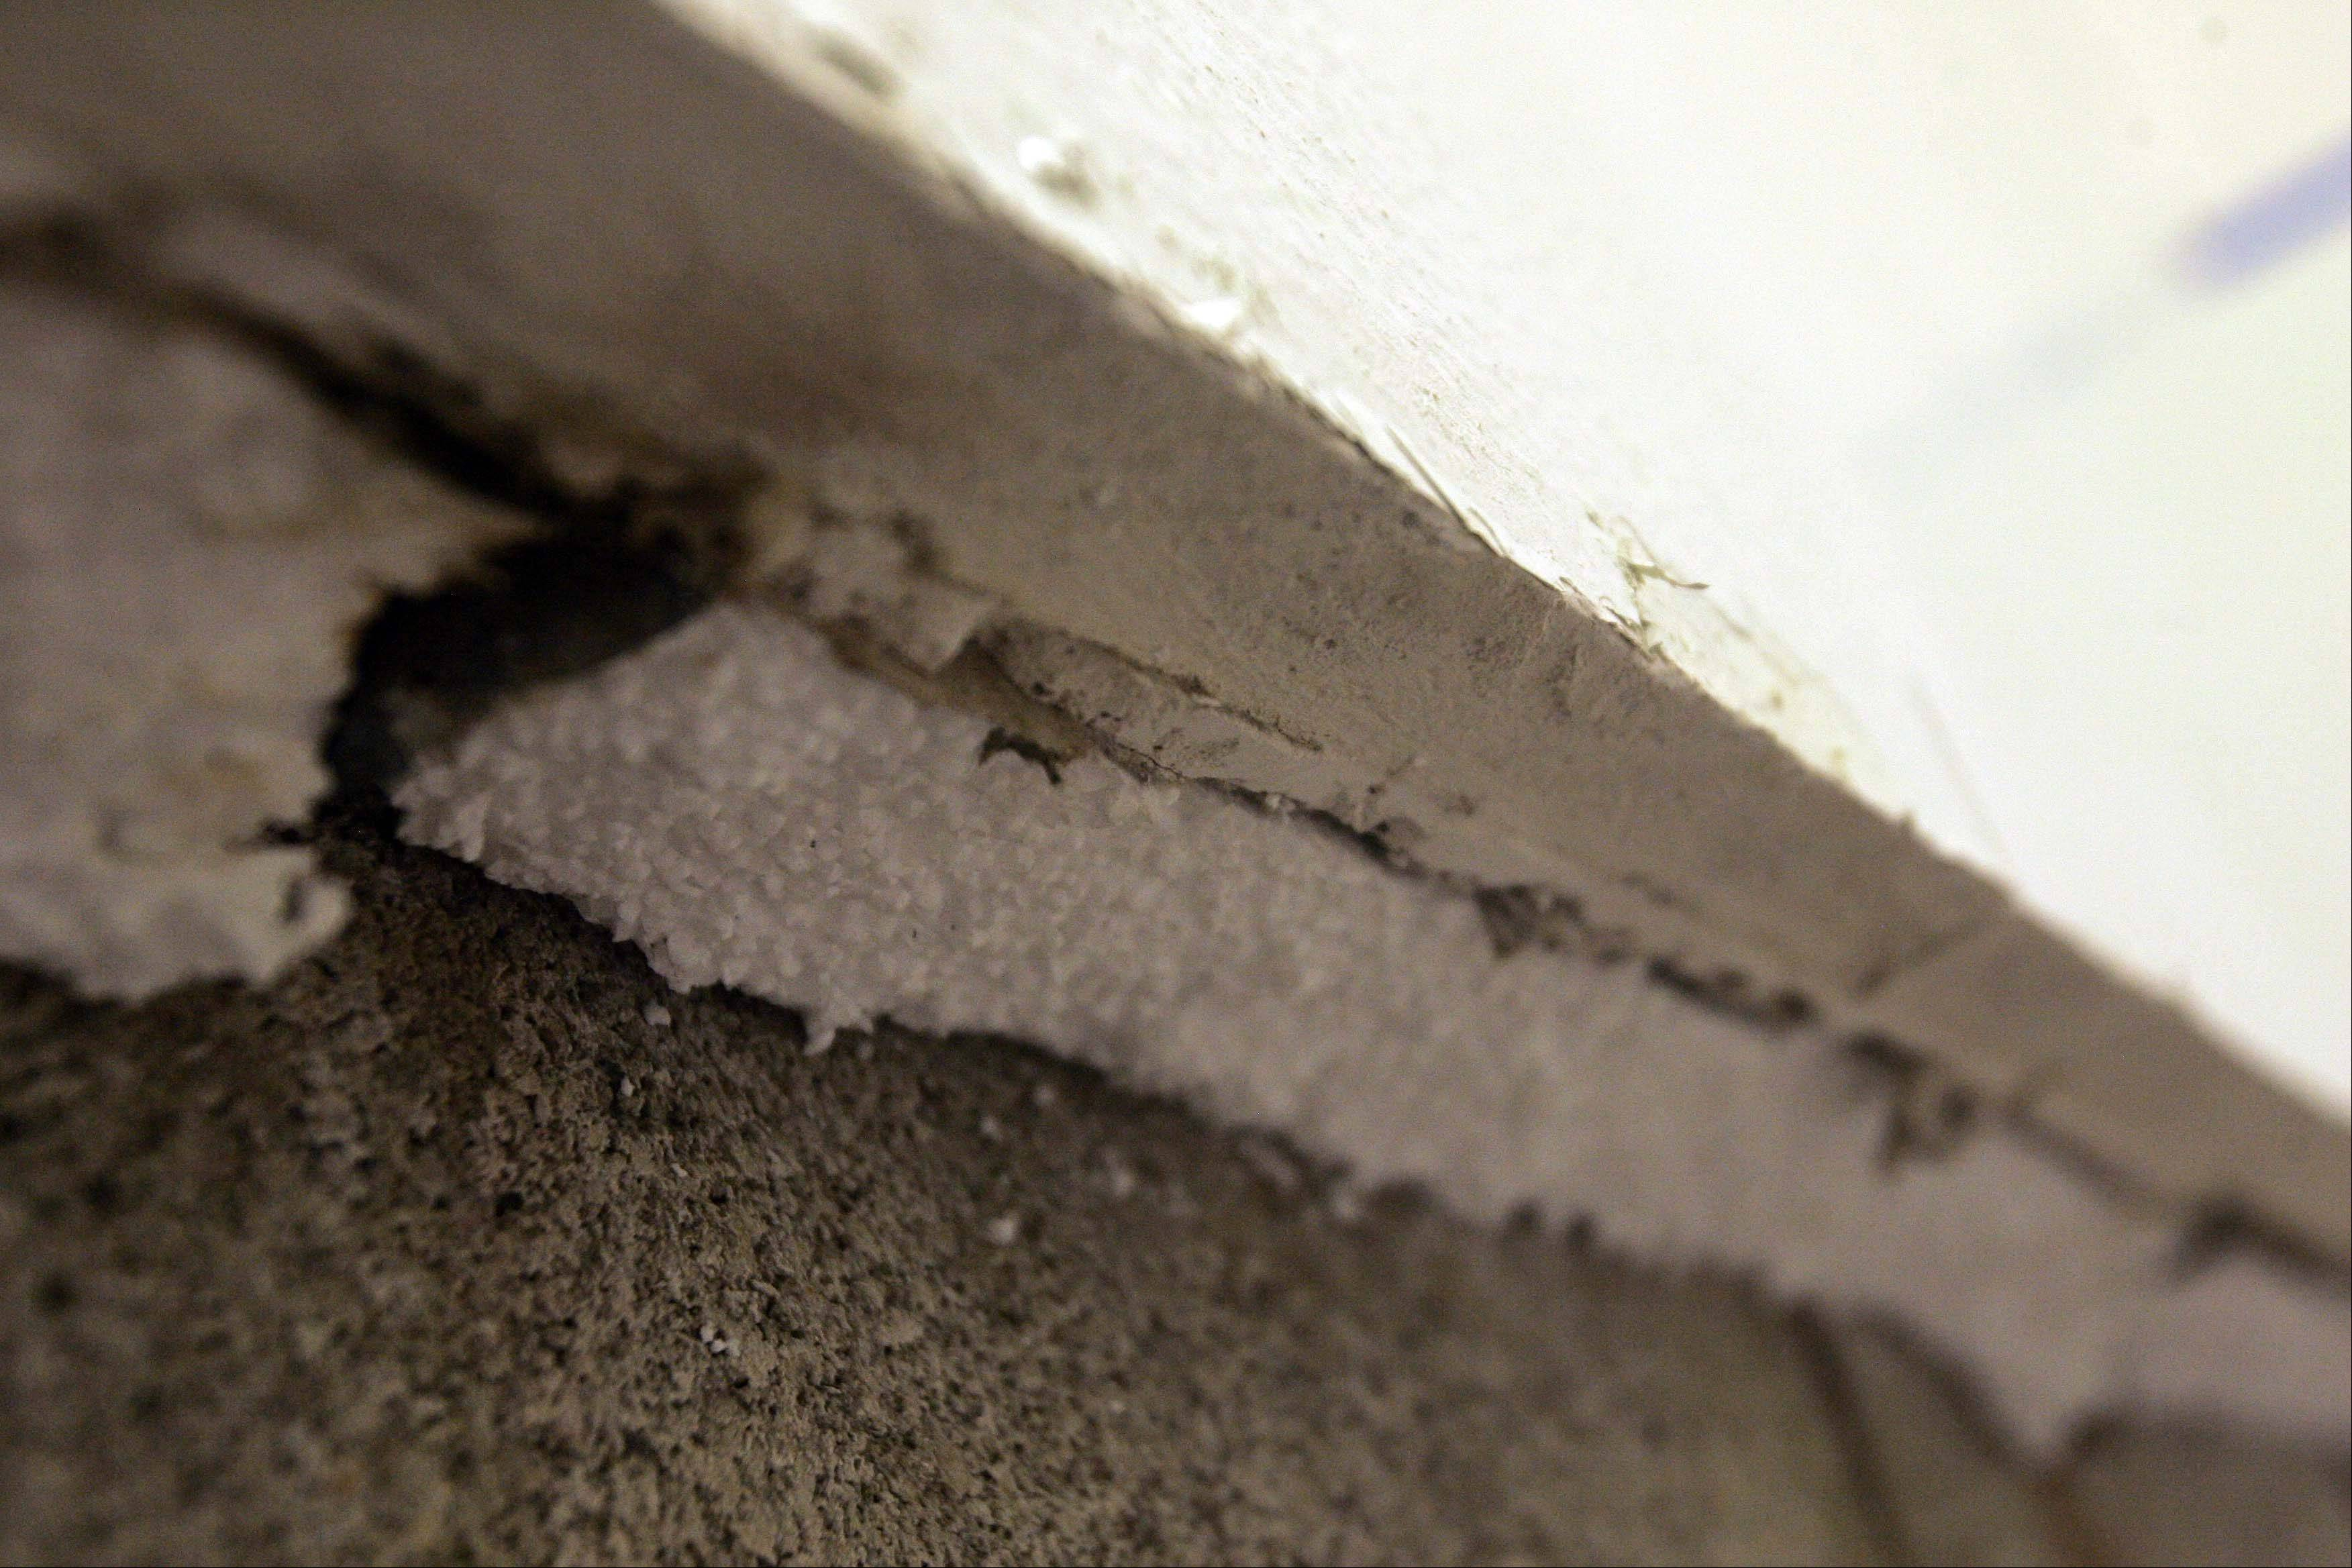 Mold was found in the Norris Recreation Center's north wall of racquetball court 3, which was part of an addition in 1981 to the original 1974 building. The wall from inside to out consists of plaster, wall board, block and brick.